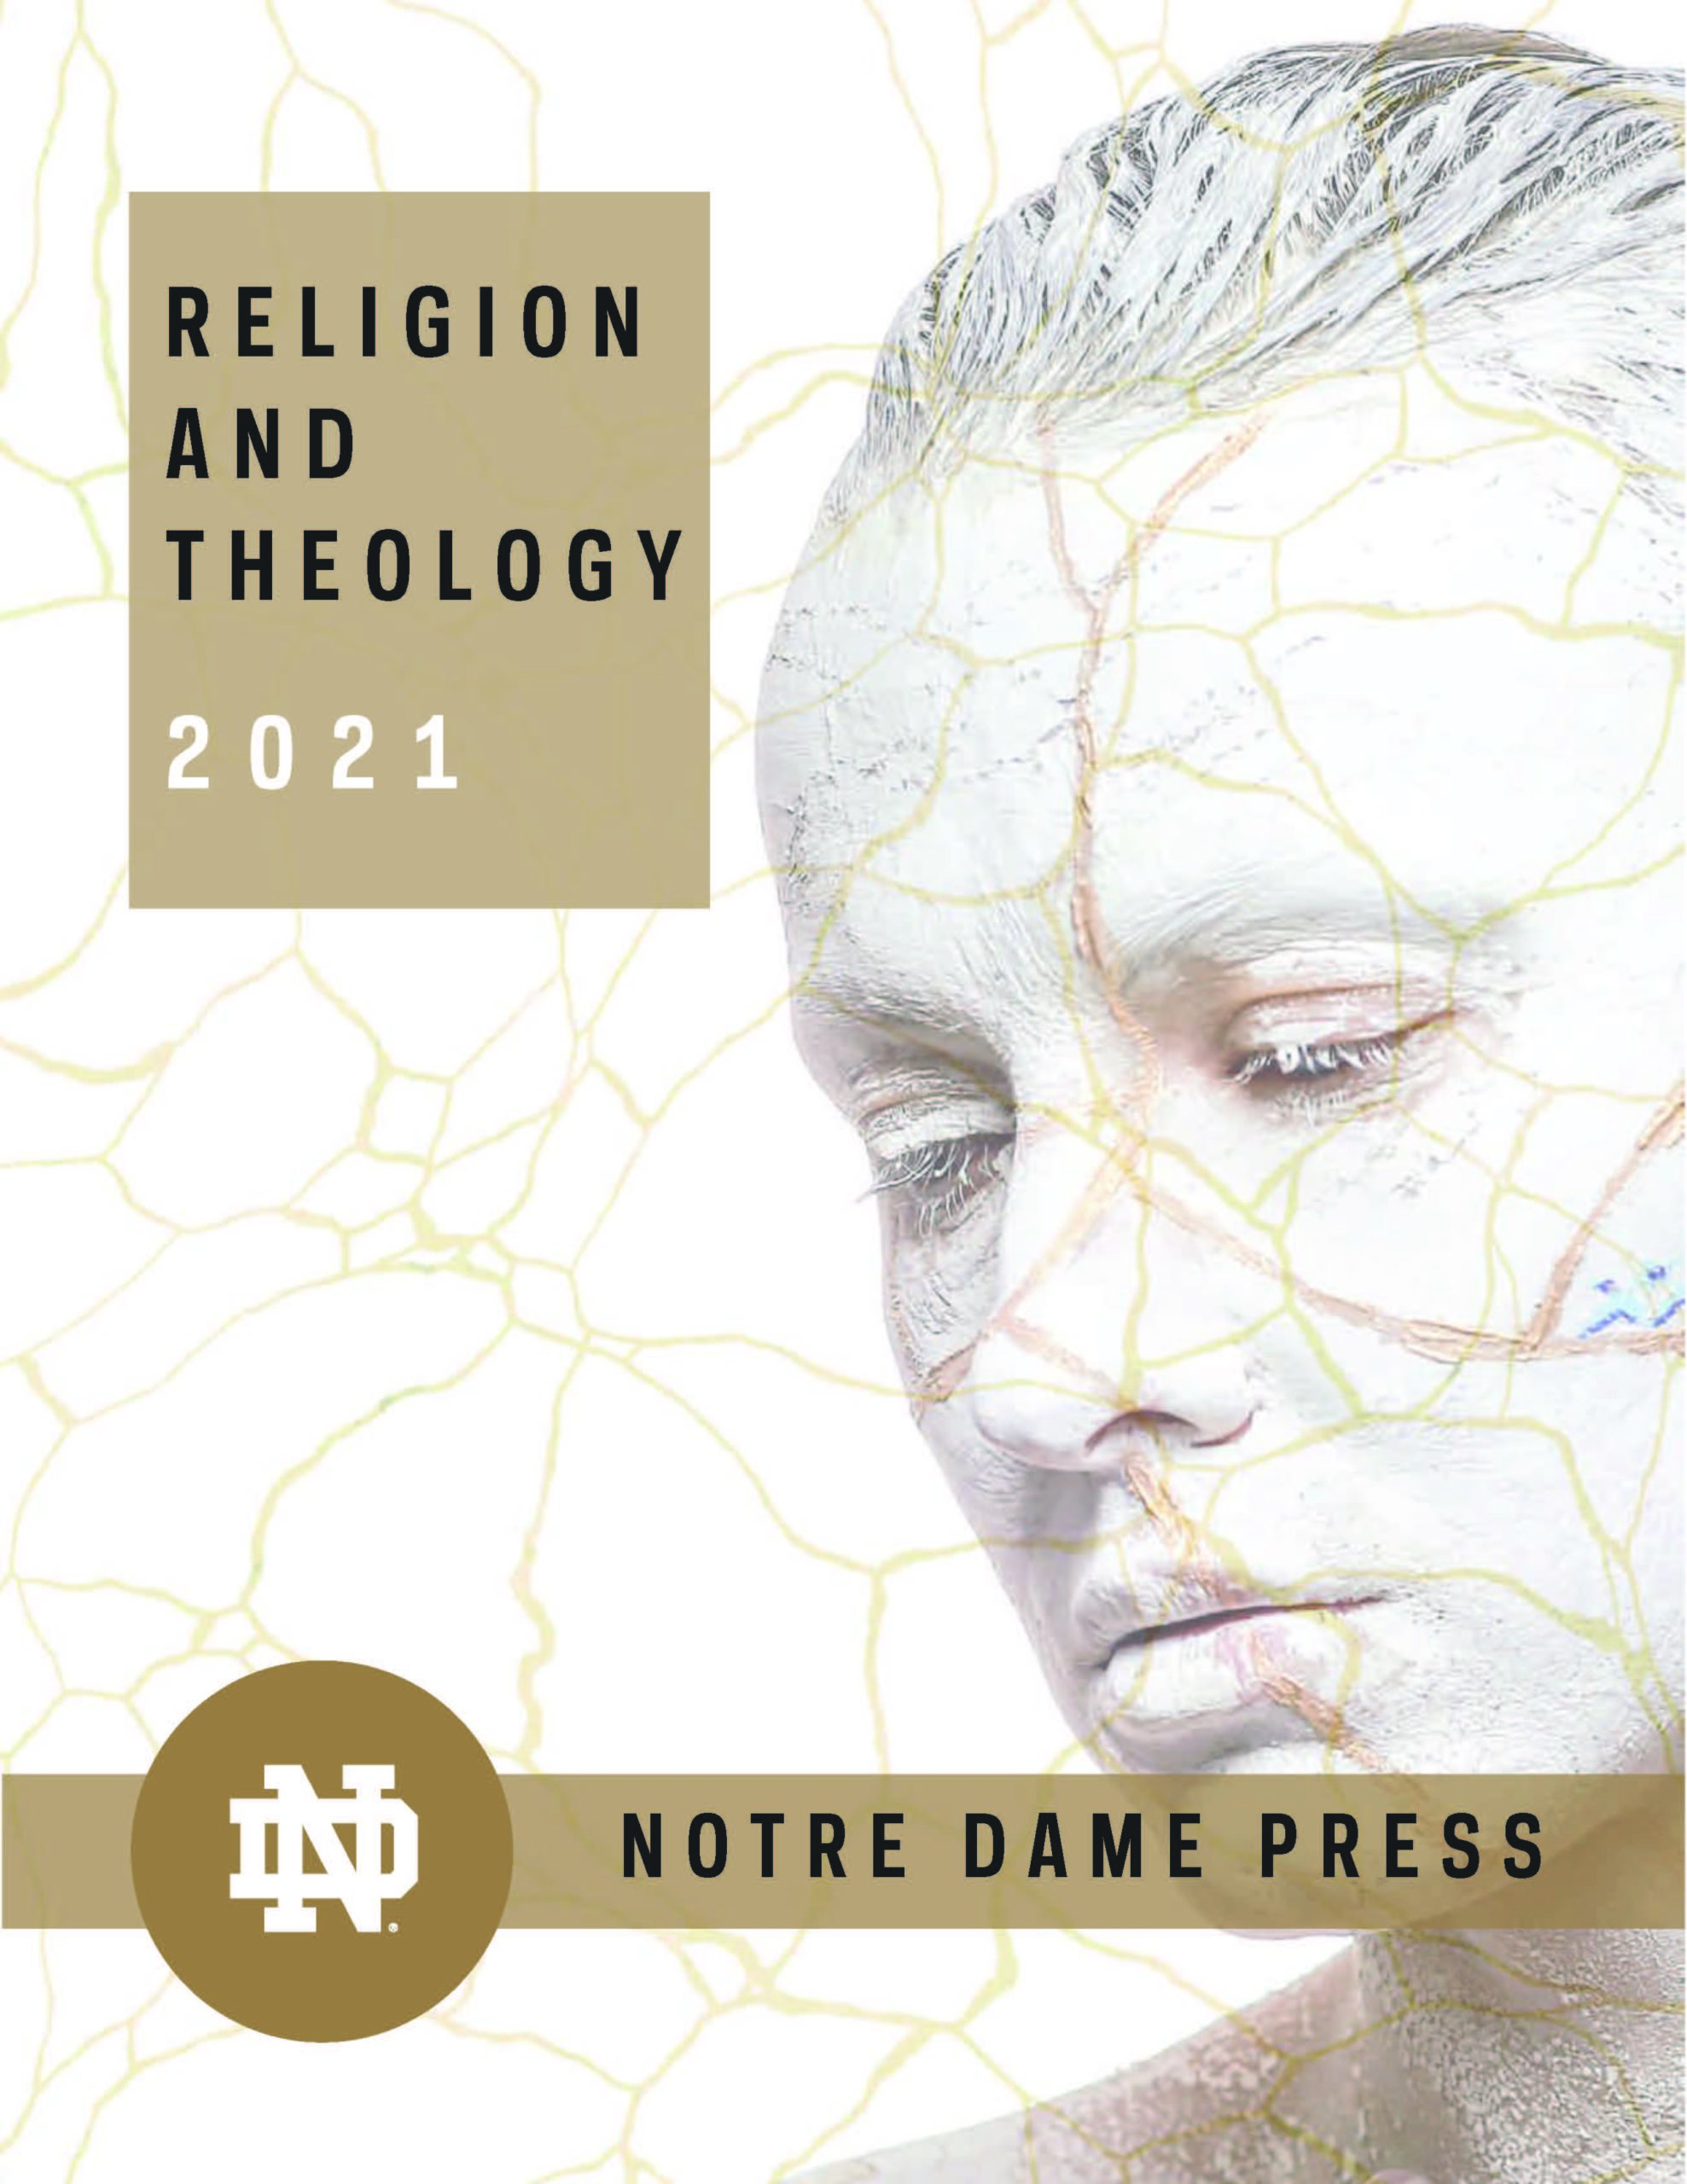 Religion and Theology_2021 front cover only